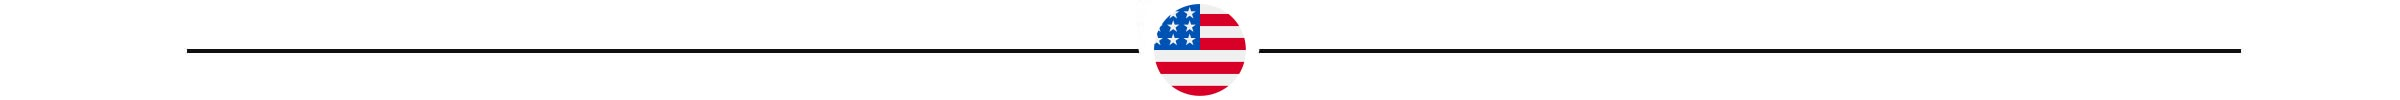 American flag in circular badge with black border